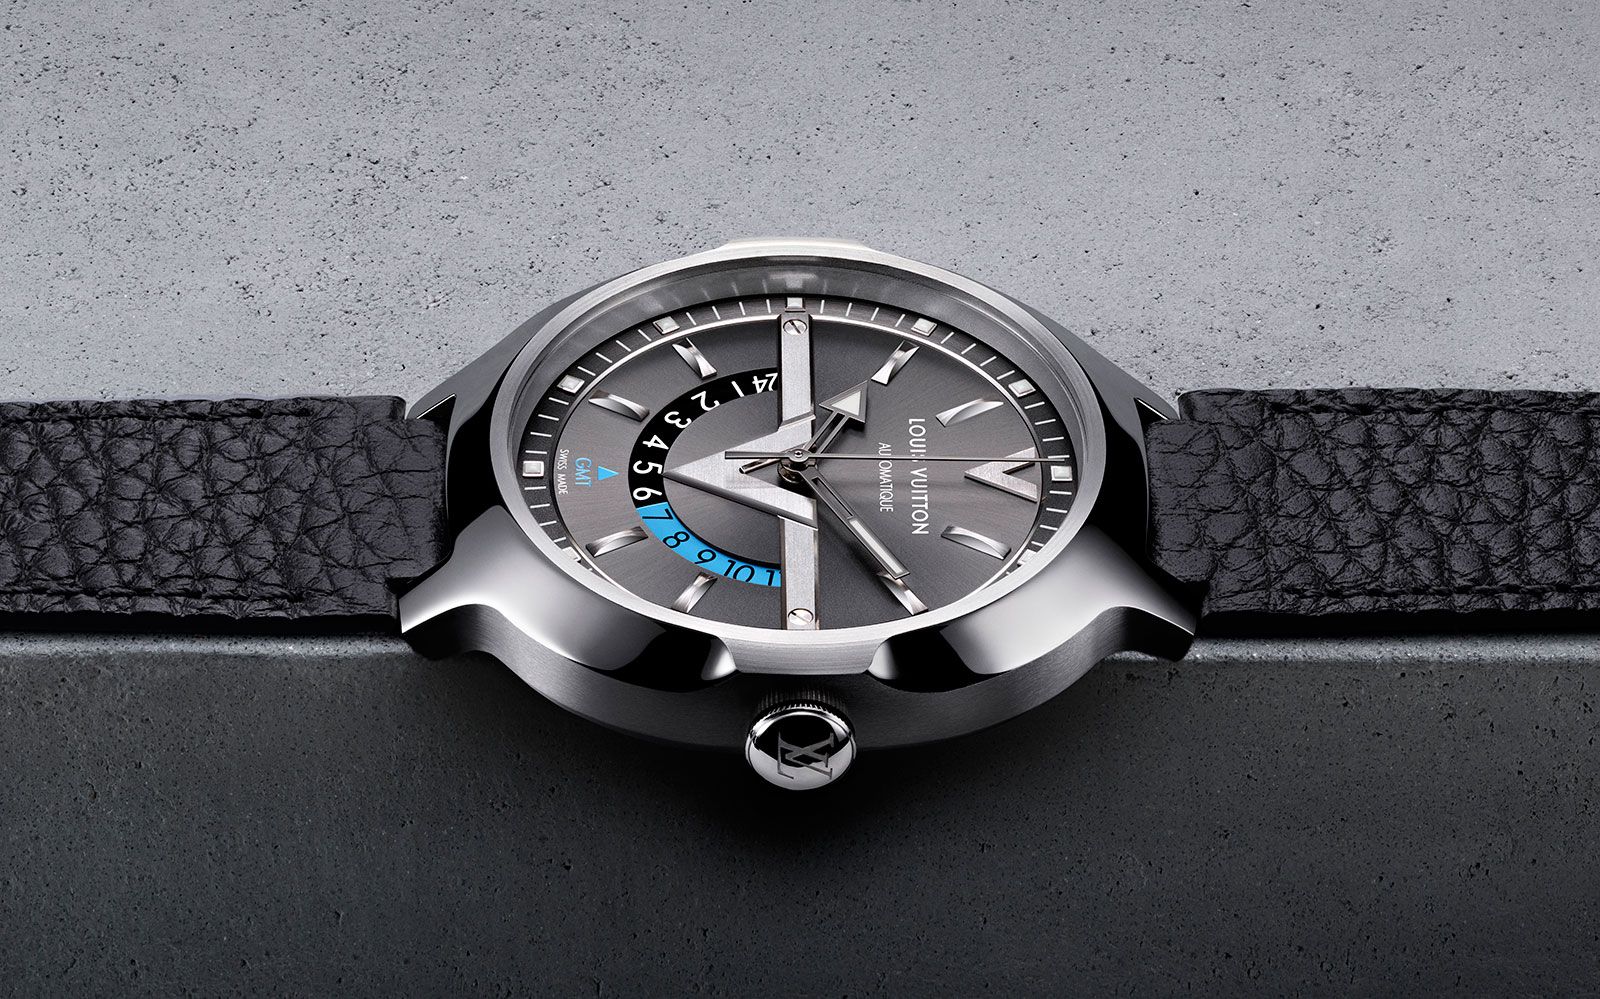 Louis-Vuitton-Voyager-GMT-4.jpg